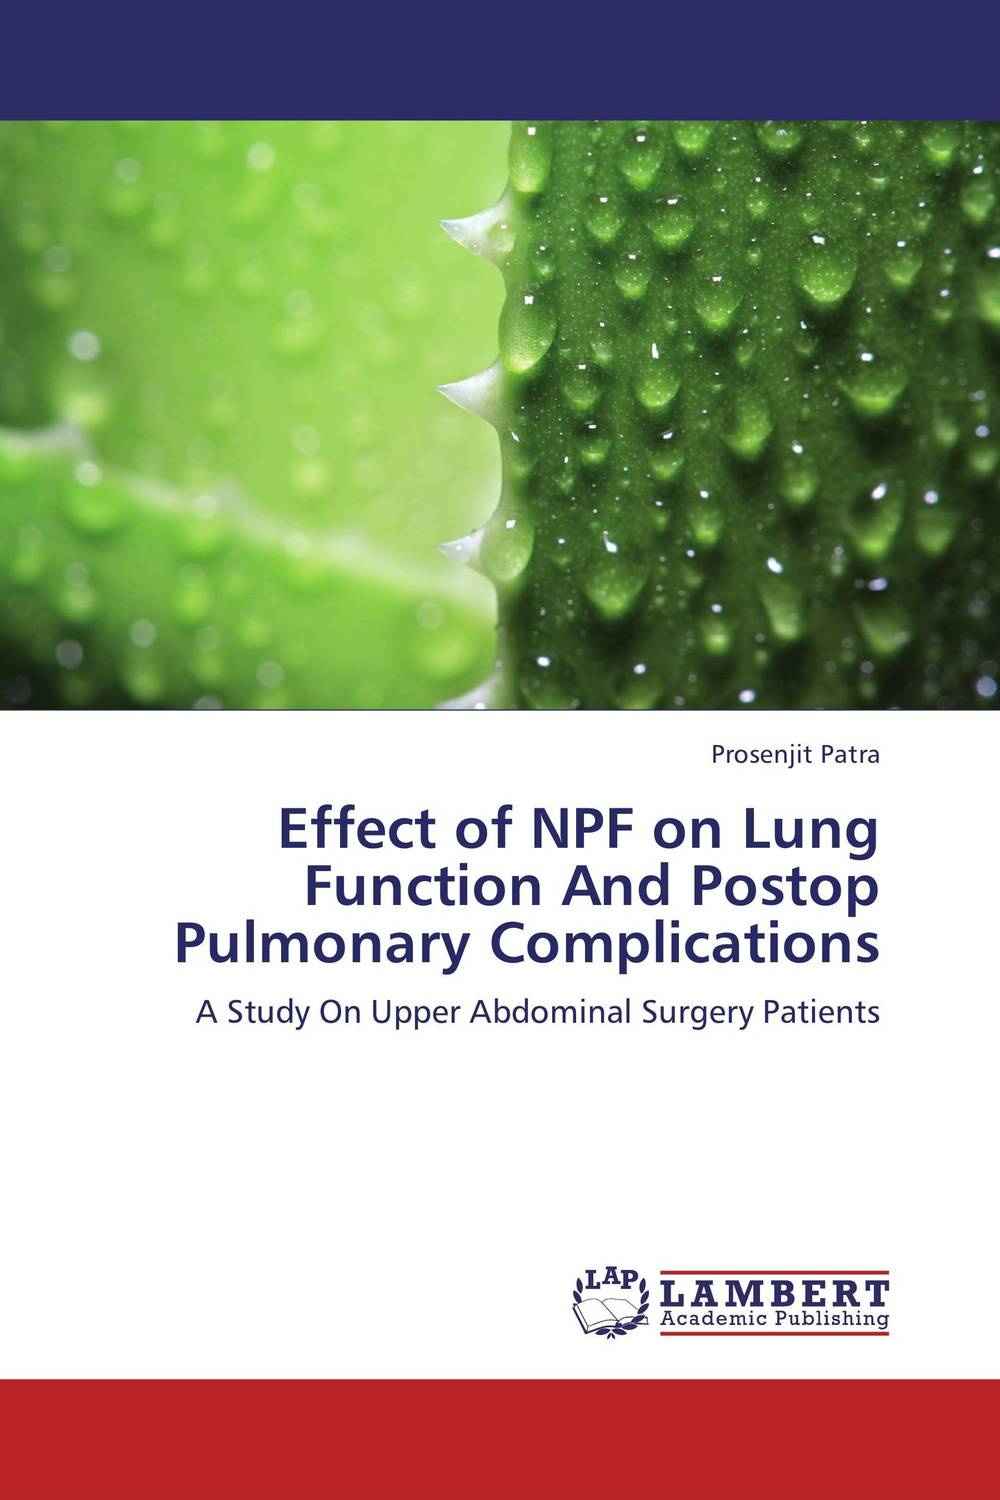 Effect of NPF on Lung Function And Postop Pulmonary Complications effect of cyclooxygenase inhibitors on diabetic complications